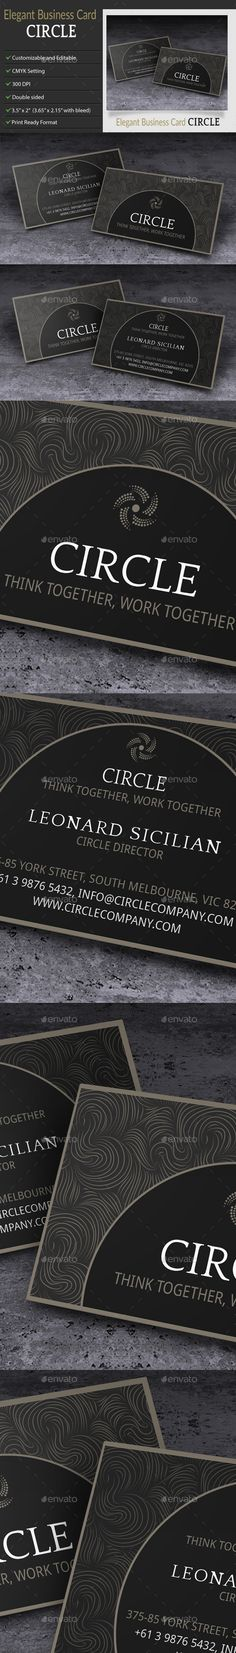 Elegant Business Card – Circle